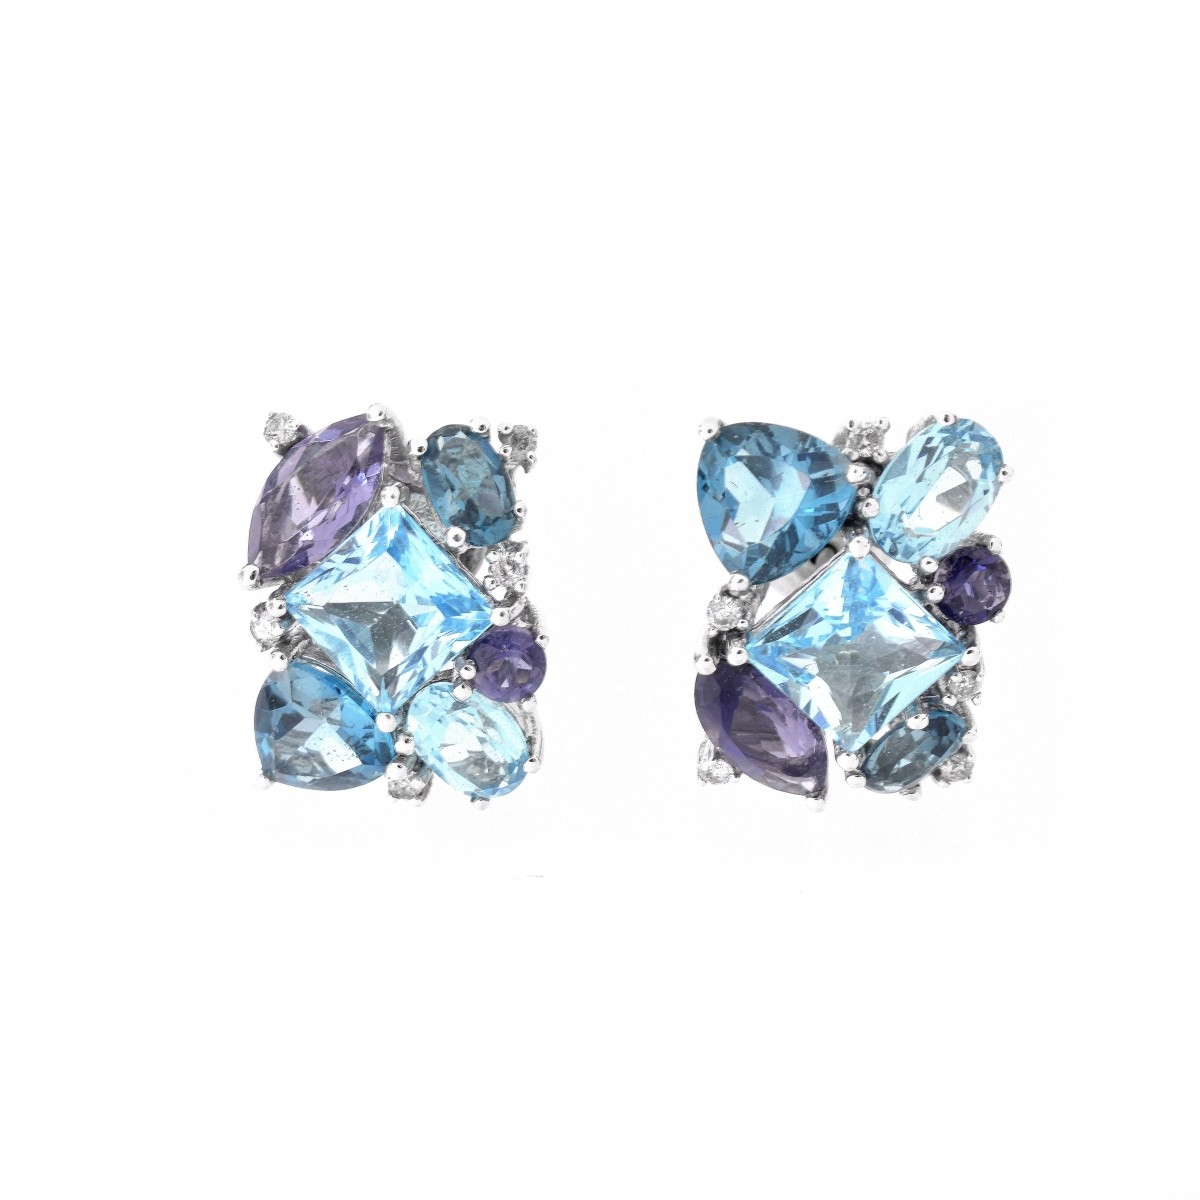 London Topaz Ring and Earring Suite